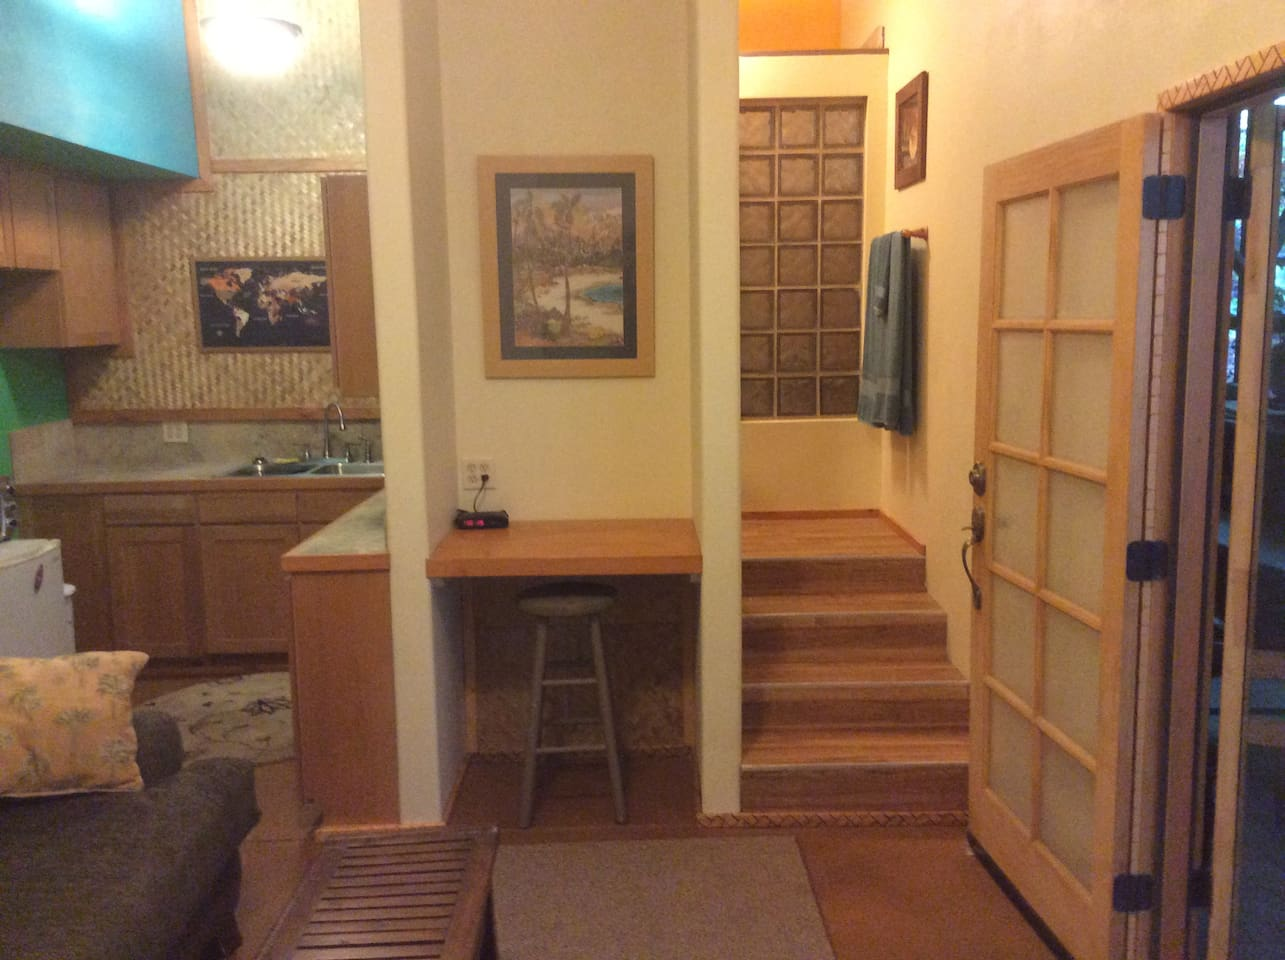 Private Studio, bathroom / shower, kitchenete, desk, queen bed with ALL TAXES INCLUDED!